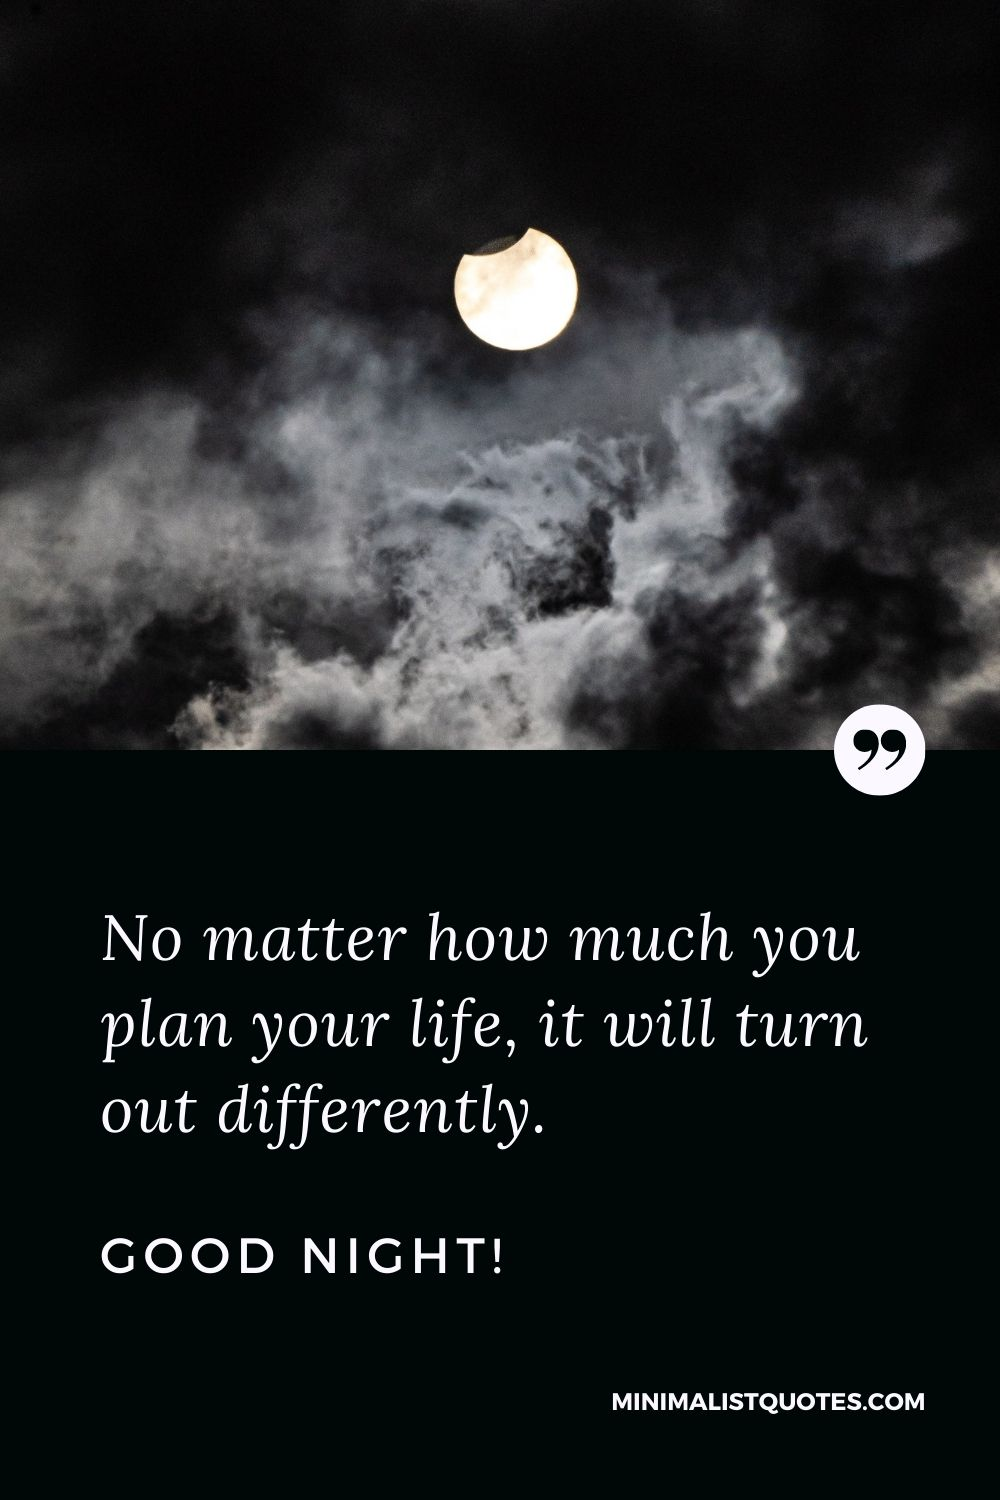 Good Night Quote, Wish & Message With Image: No matter how much you plan your life, it will turn out differently. Good Night!